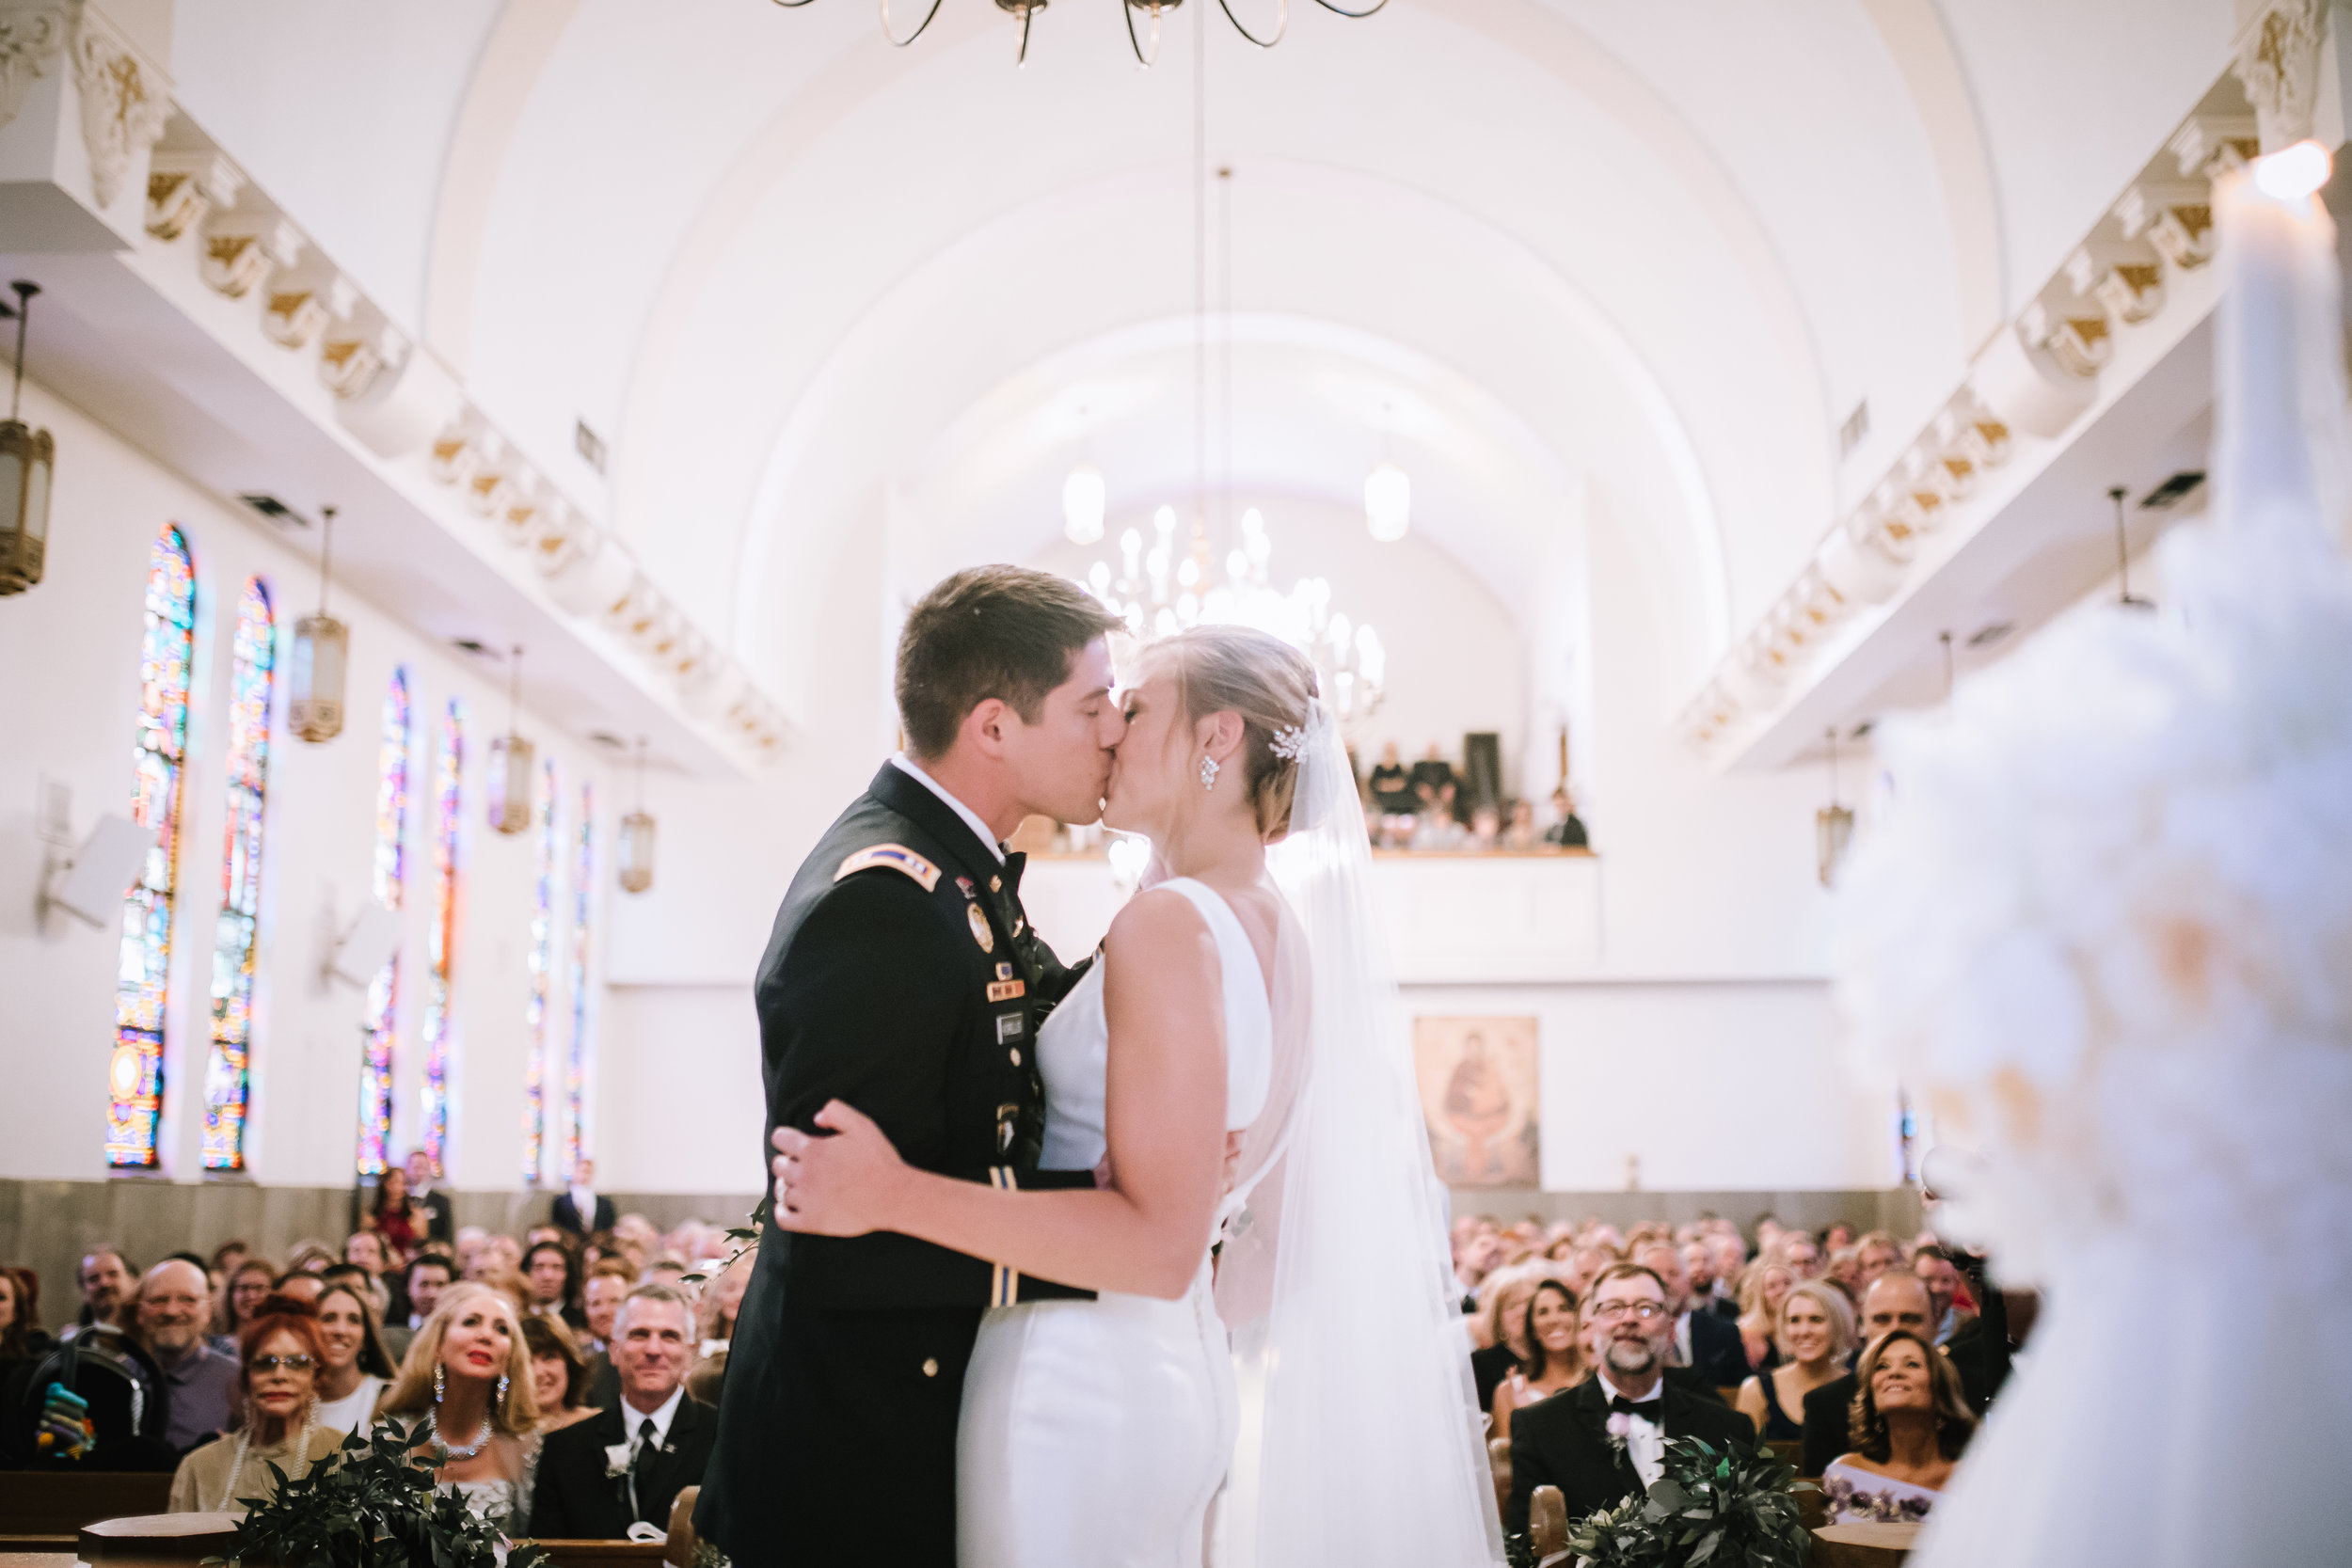 Wedding-first-kiss-with-guests-lauren-ashley-studios.jpg